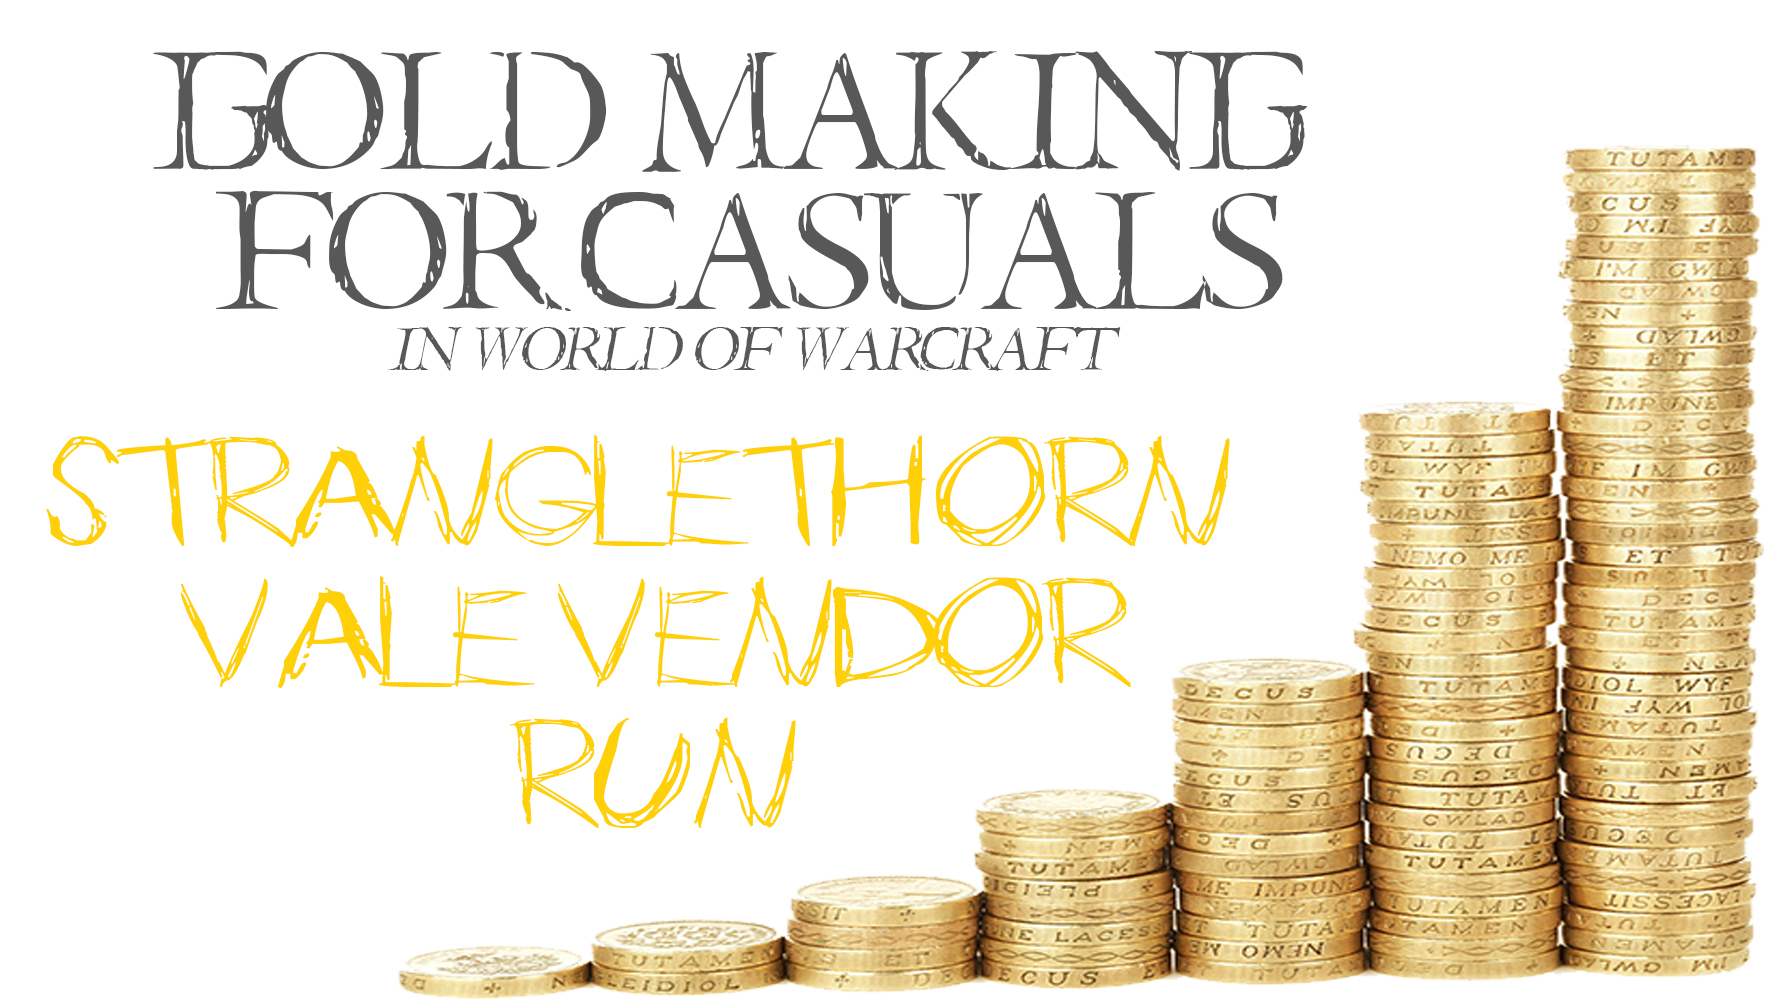 Stranglethorn Vale Vendors Run Gold Making For Casual Is A Series Of Tips